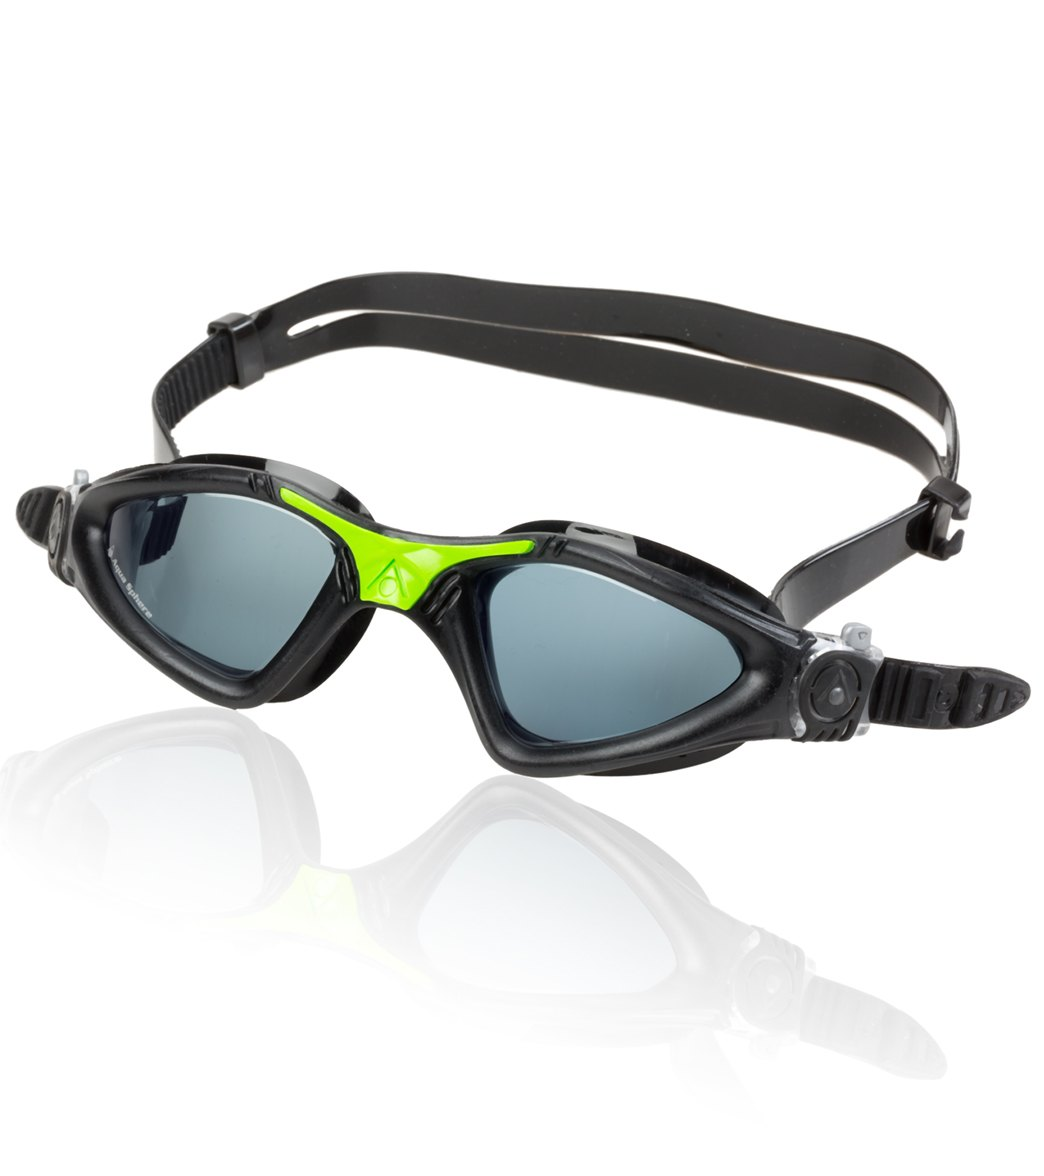 4676142c75 Aqua Sphere Kayenne Goggle Smoke Lens at SwimOutlet.com